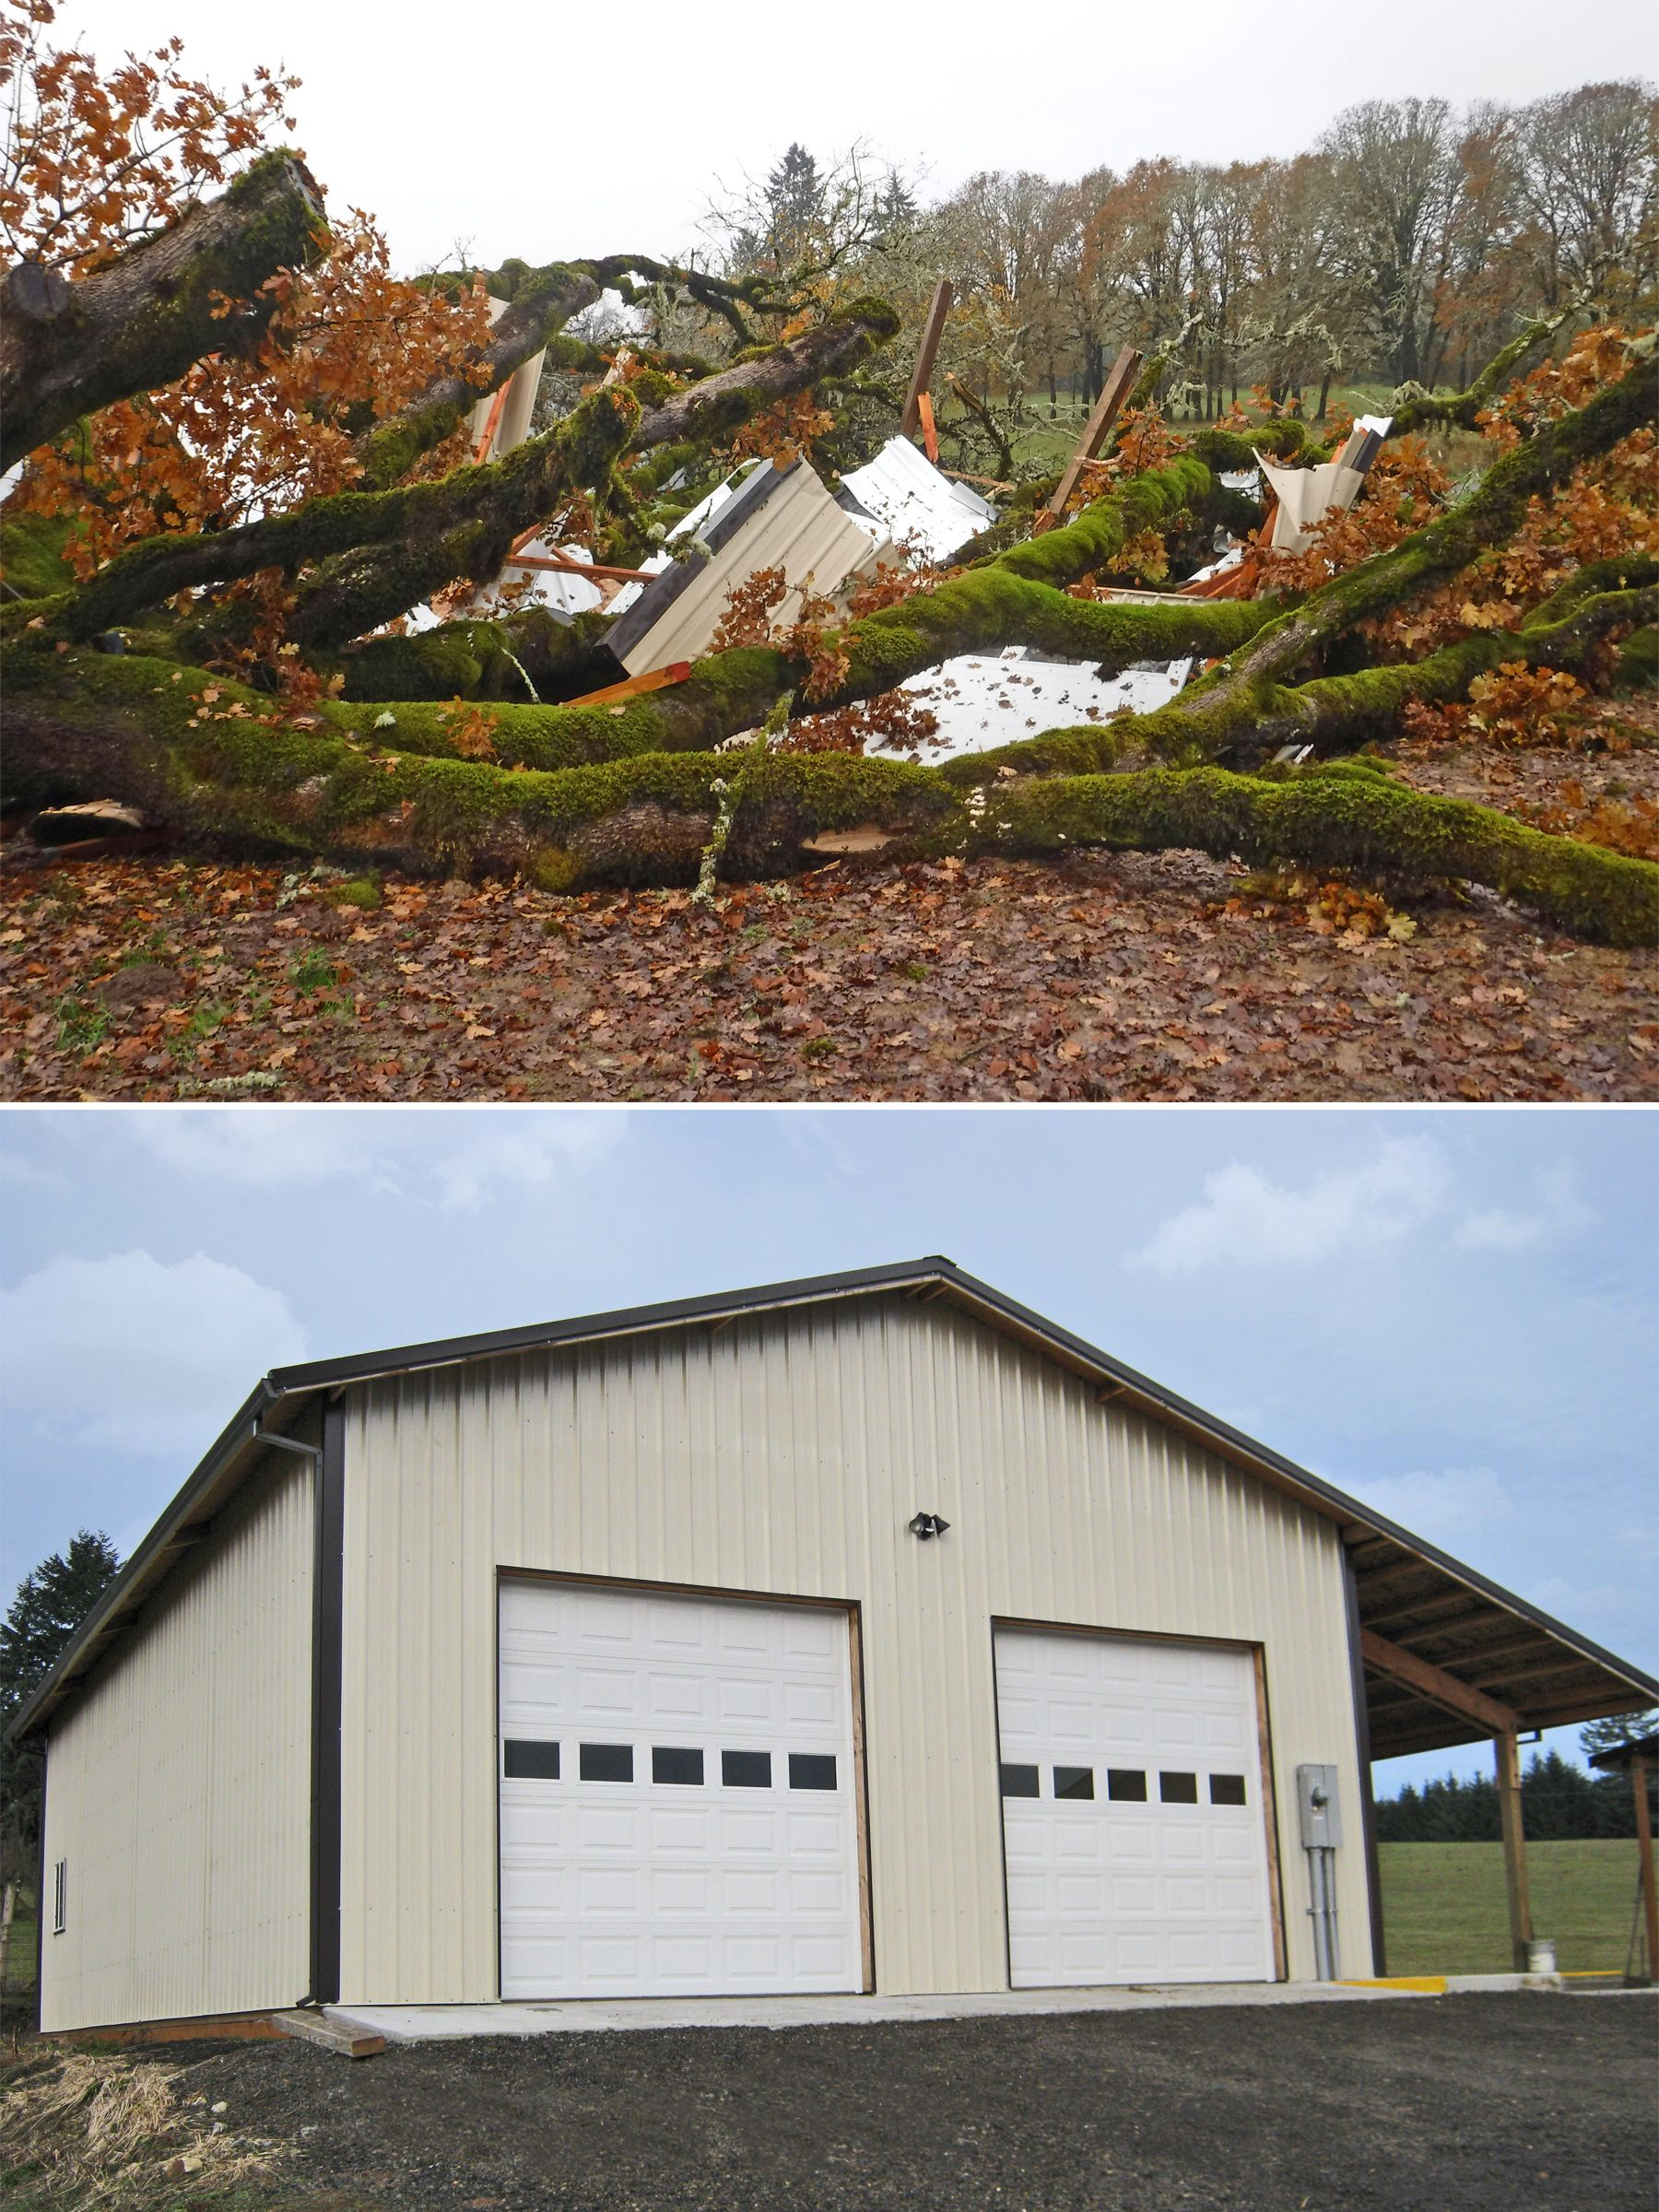 small resolution of before and after shot of a 32 x 48 x 14 agricultural building that was destroyed by a falling tree www econofabbuildings com